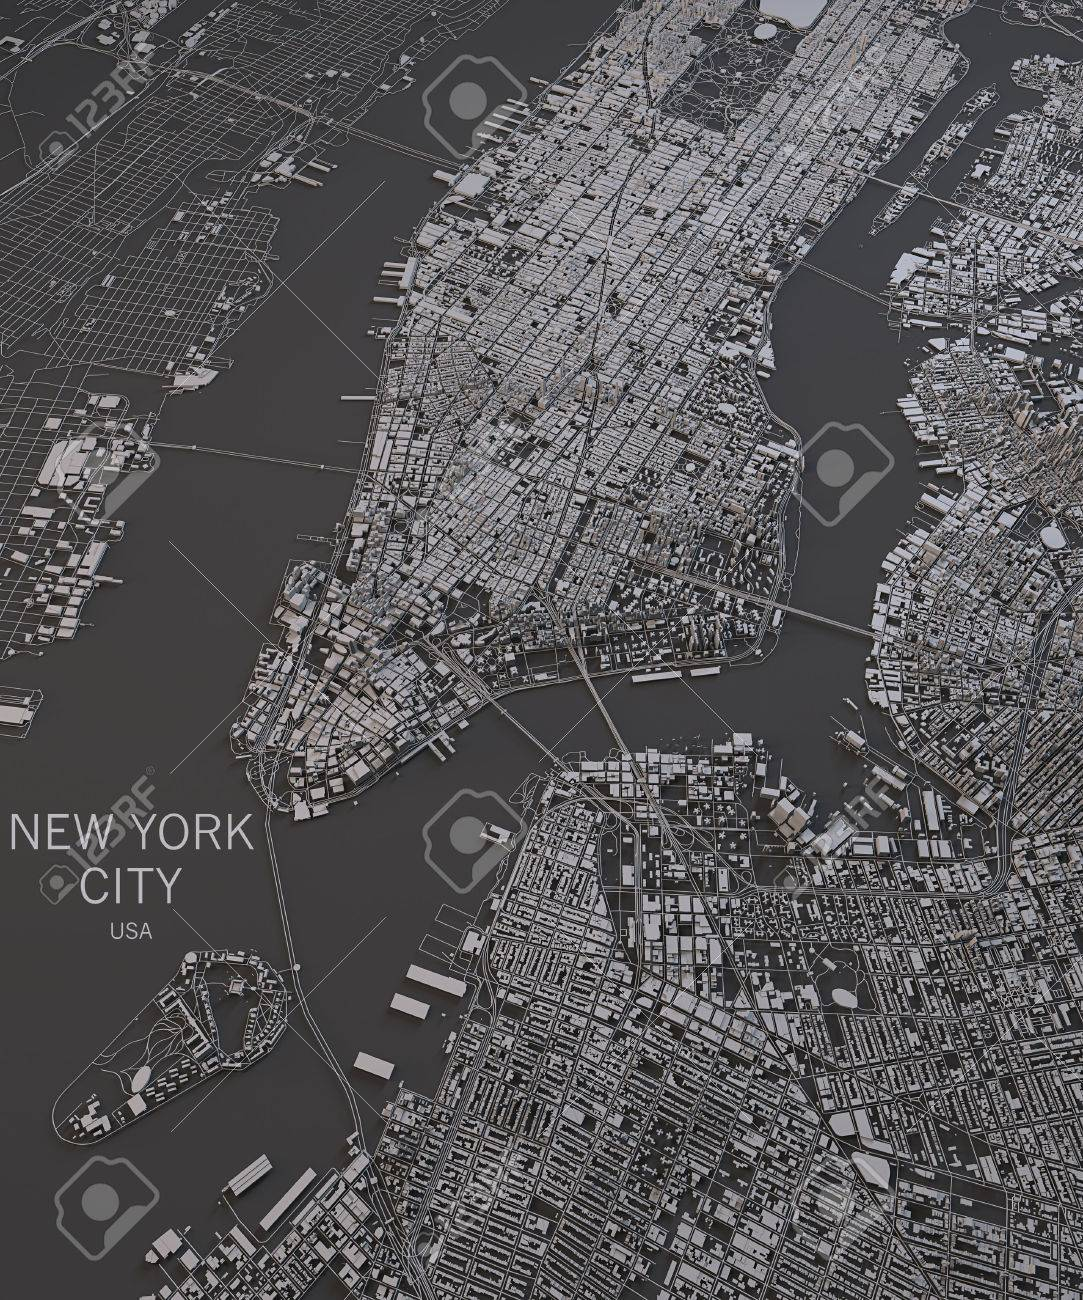 New York City map satellite view map in negative Satellite Map Of New York on nighttime satellite map new york, fjords of new york, satellite maps of my house, driving map of new york, traffic map of new york, relief map of new york, statistics of new york, street map of new york, topo map of new york, physical map of new york, road map of new york, satellite map new york state, virtual tour of new york, world map of new york, google map of new york, political map of new york, news of new york, satellite view of malden ny, green map of new york, ariel map of new york,